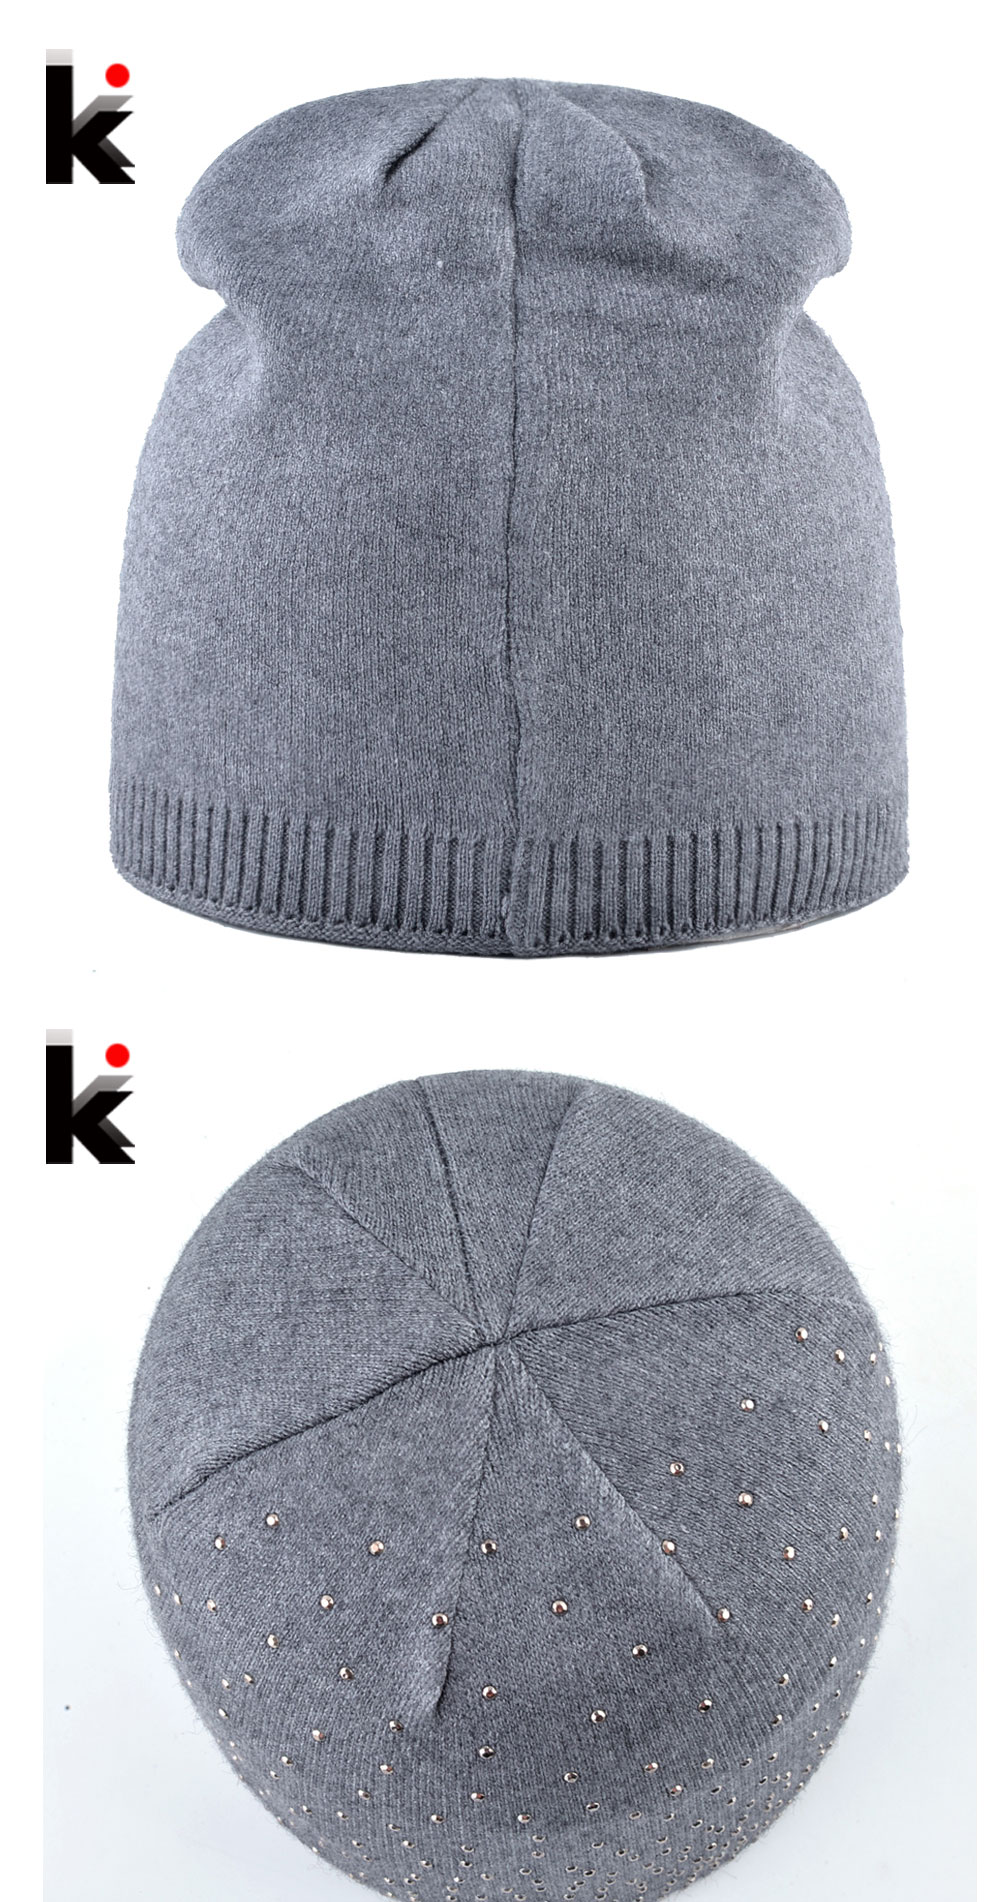 6d92ebb3896 Knitted Winter Beanies Women Shinning Rhinestone Hats Autumn Knitting Skullies  Beanies Ladies Soft Warm Bonnet Caps Female Gorro